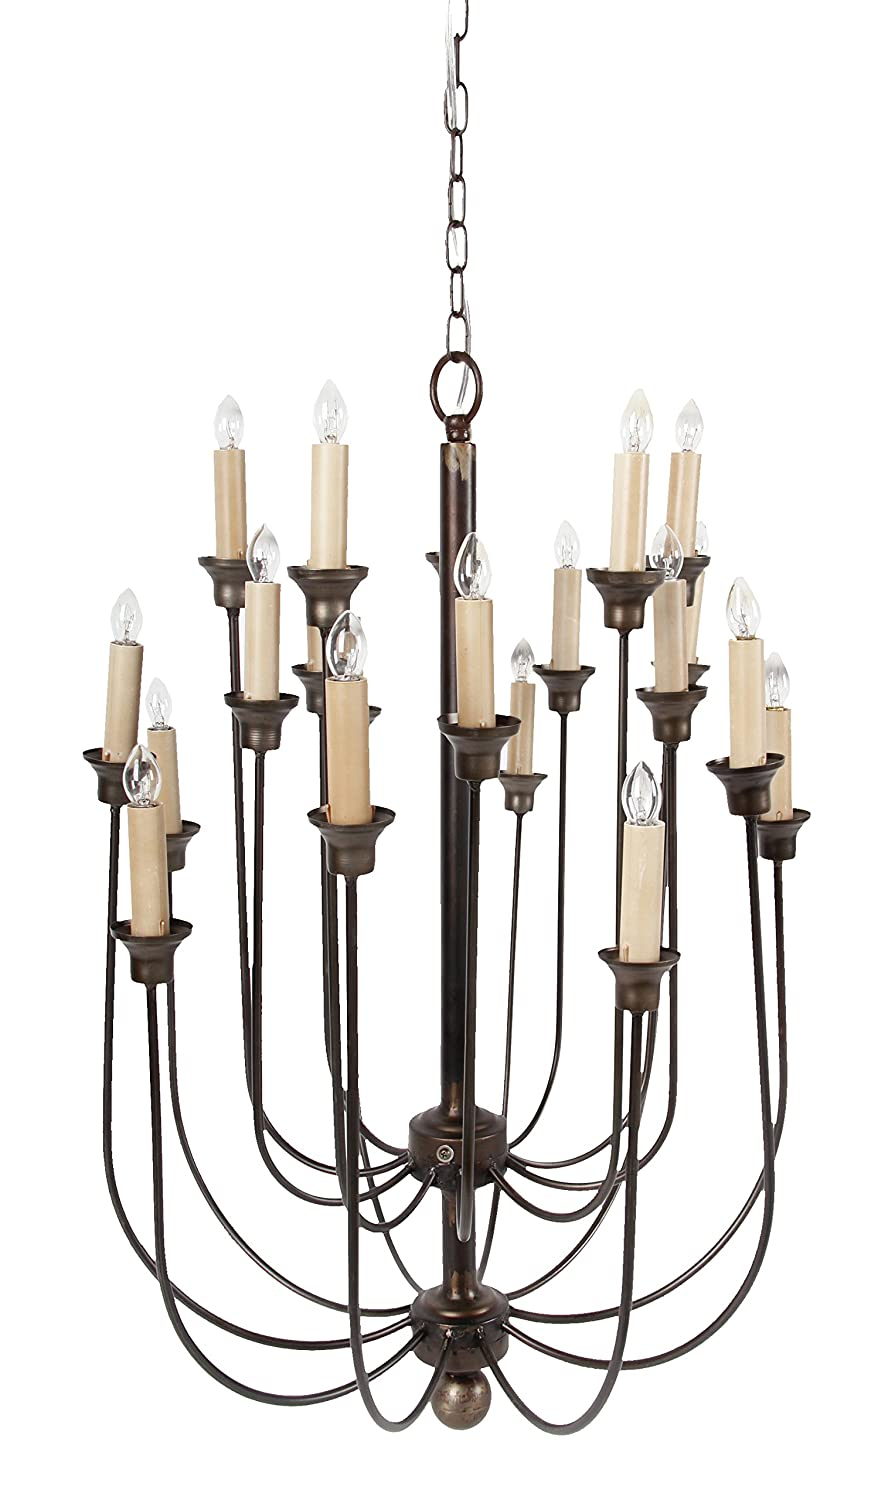 A&B Home 37825 Langley 20 Light Candle Chandelier, 22 by 22 by 29.5-Inch